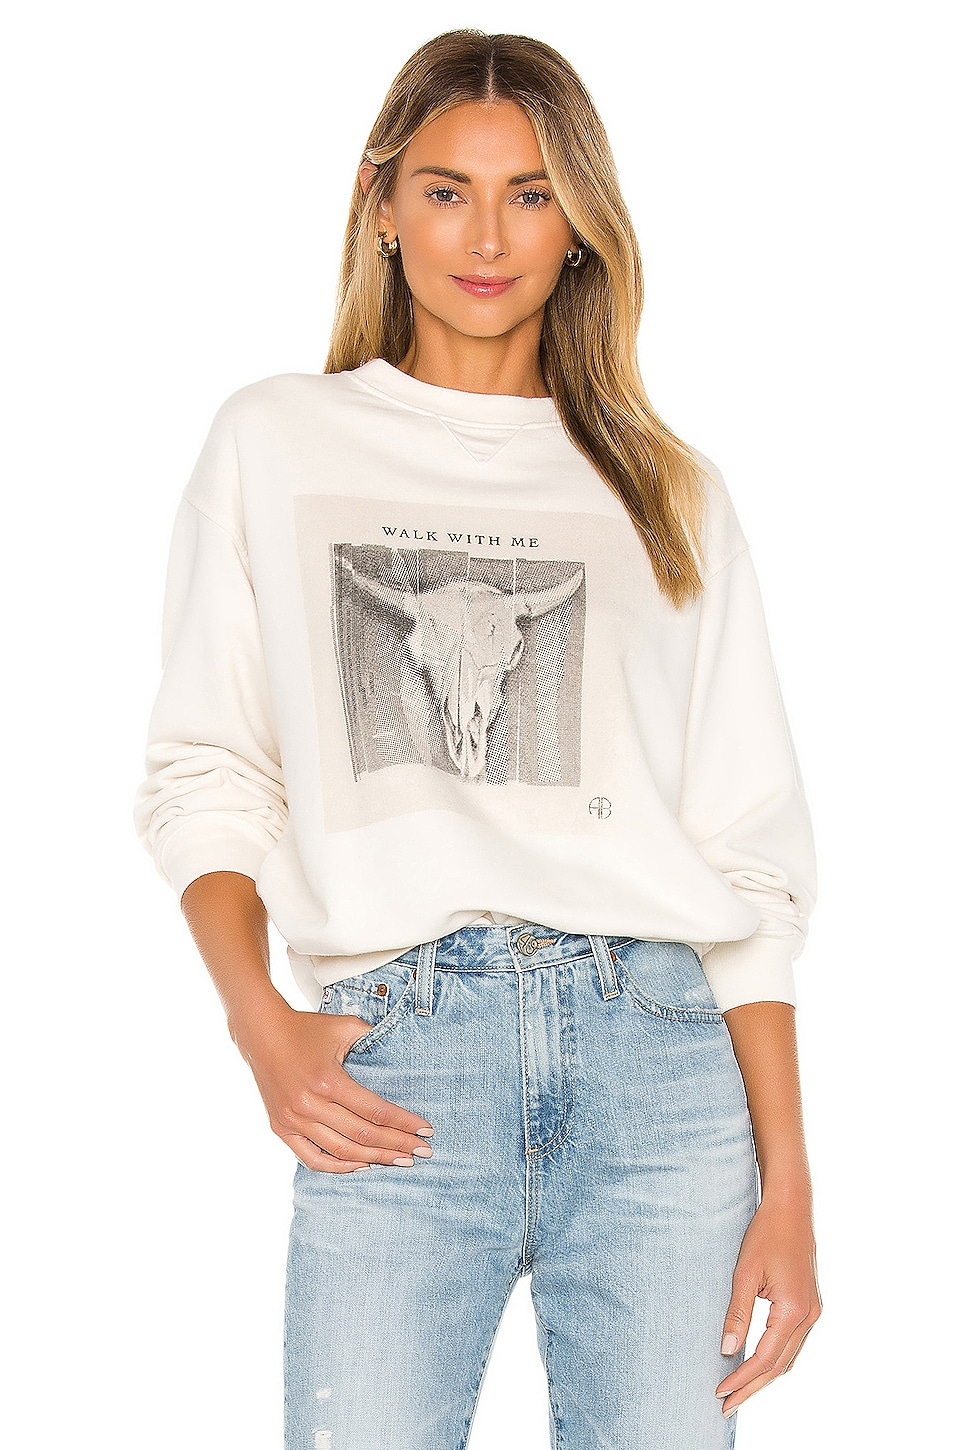 Ramona Walk With Me Sweatshirt             ANINE BING                                                                                                       CA$ 224.71 4